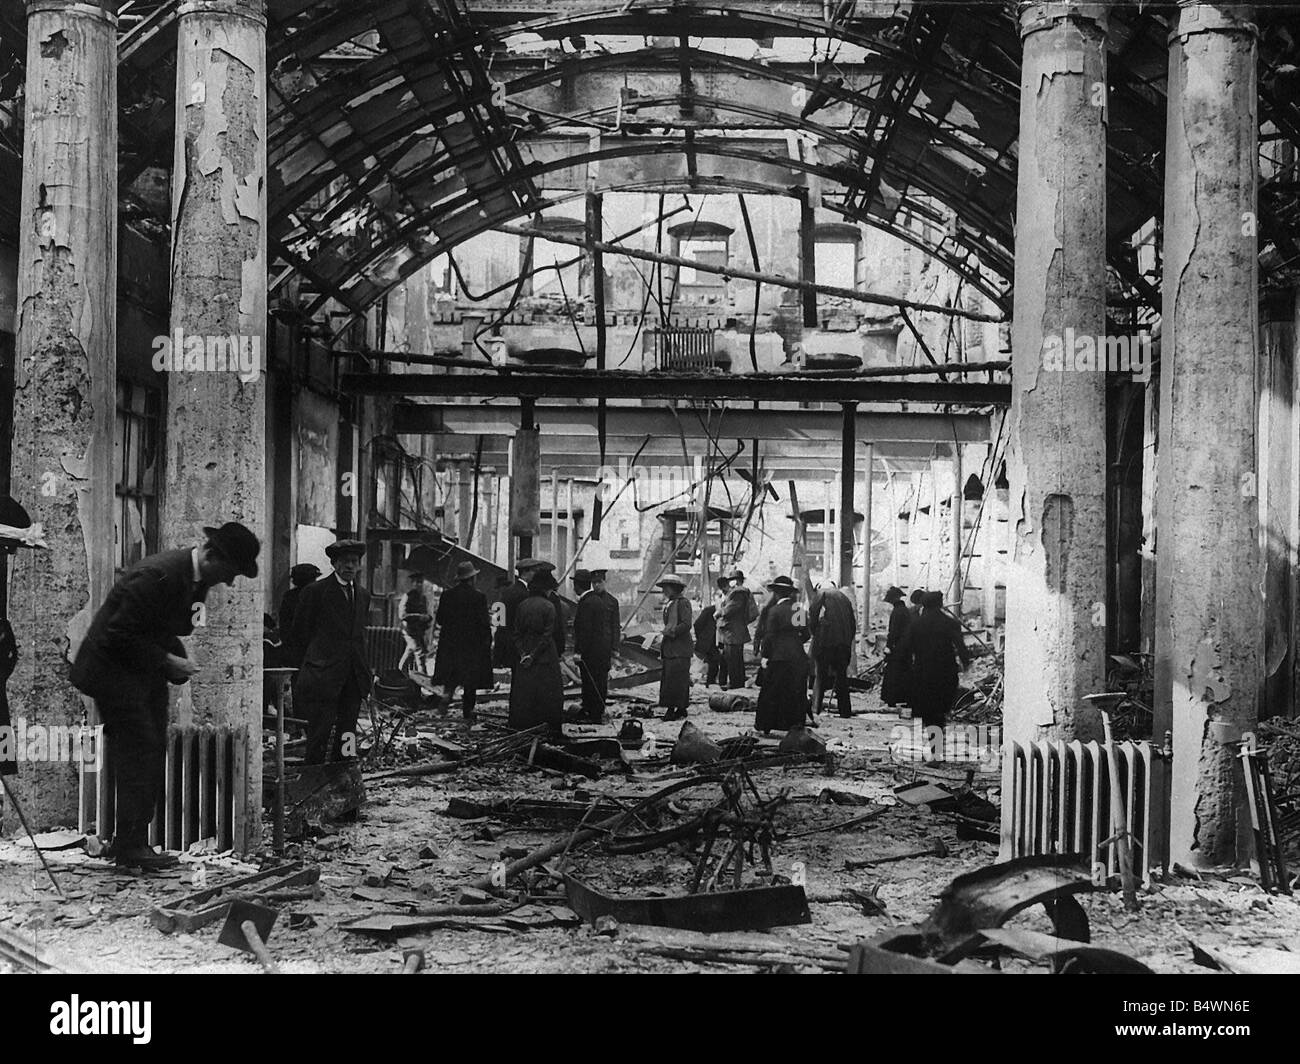 Dublin Post Office in ruins May 4th 1916 Dubliners walk through the remains of the Post Office in Sackville Row - Stock Image